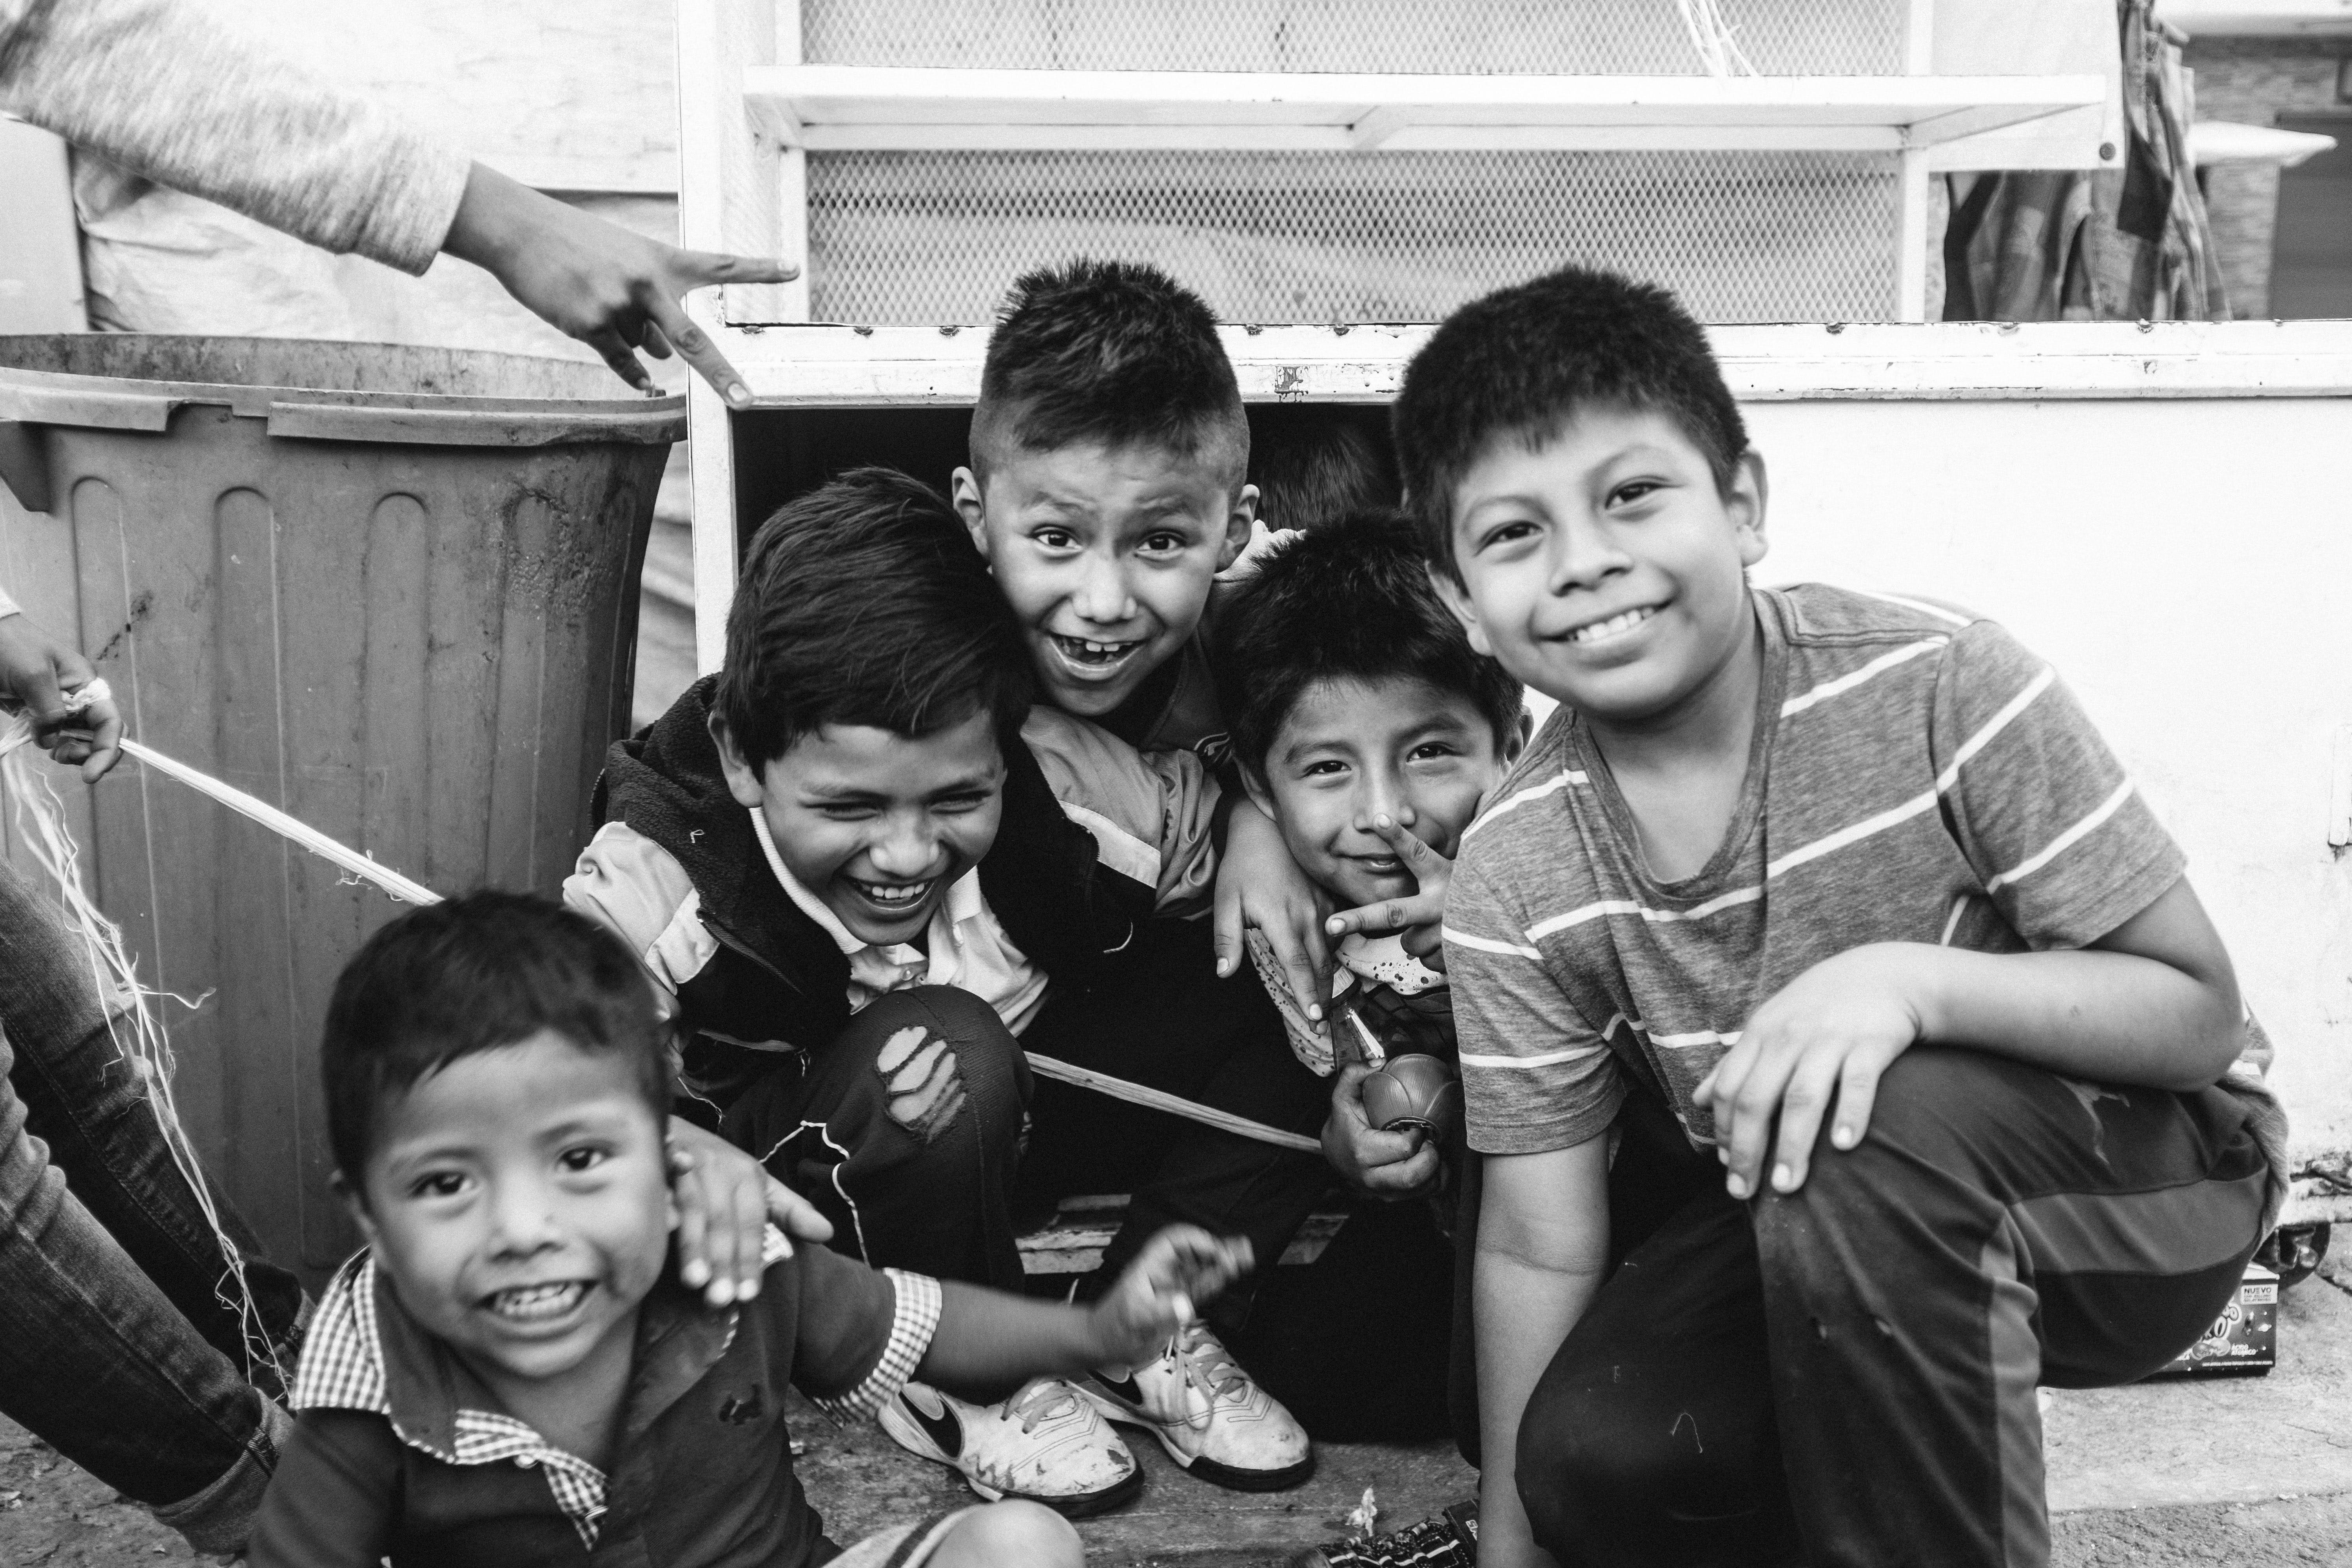 Grayscale Photo of Group of Children